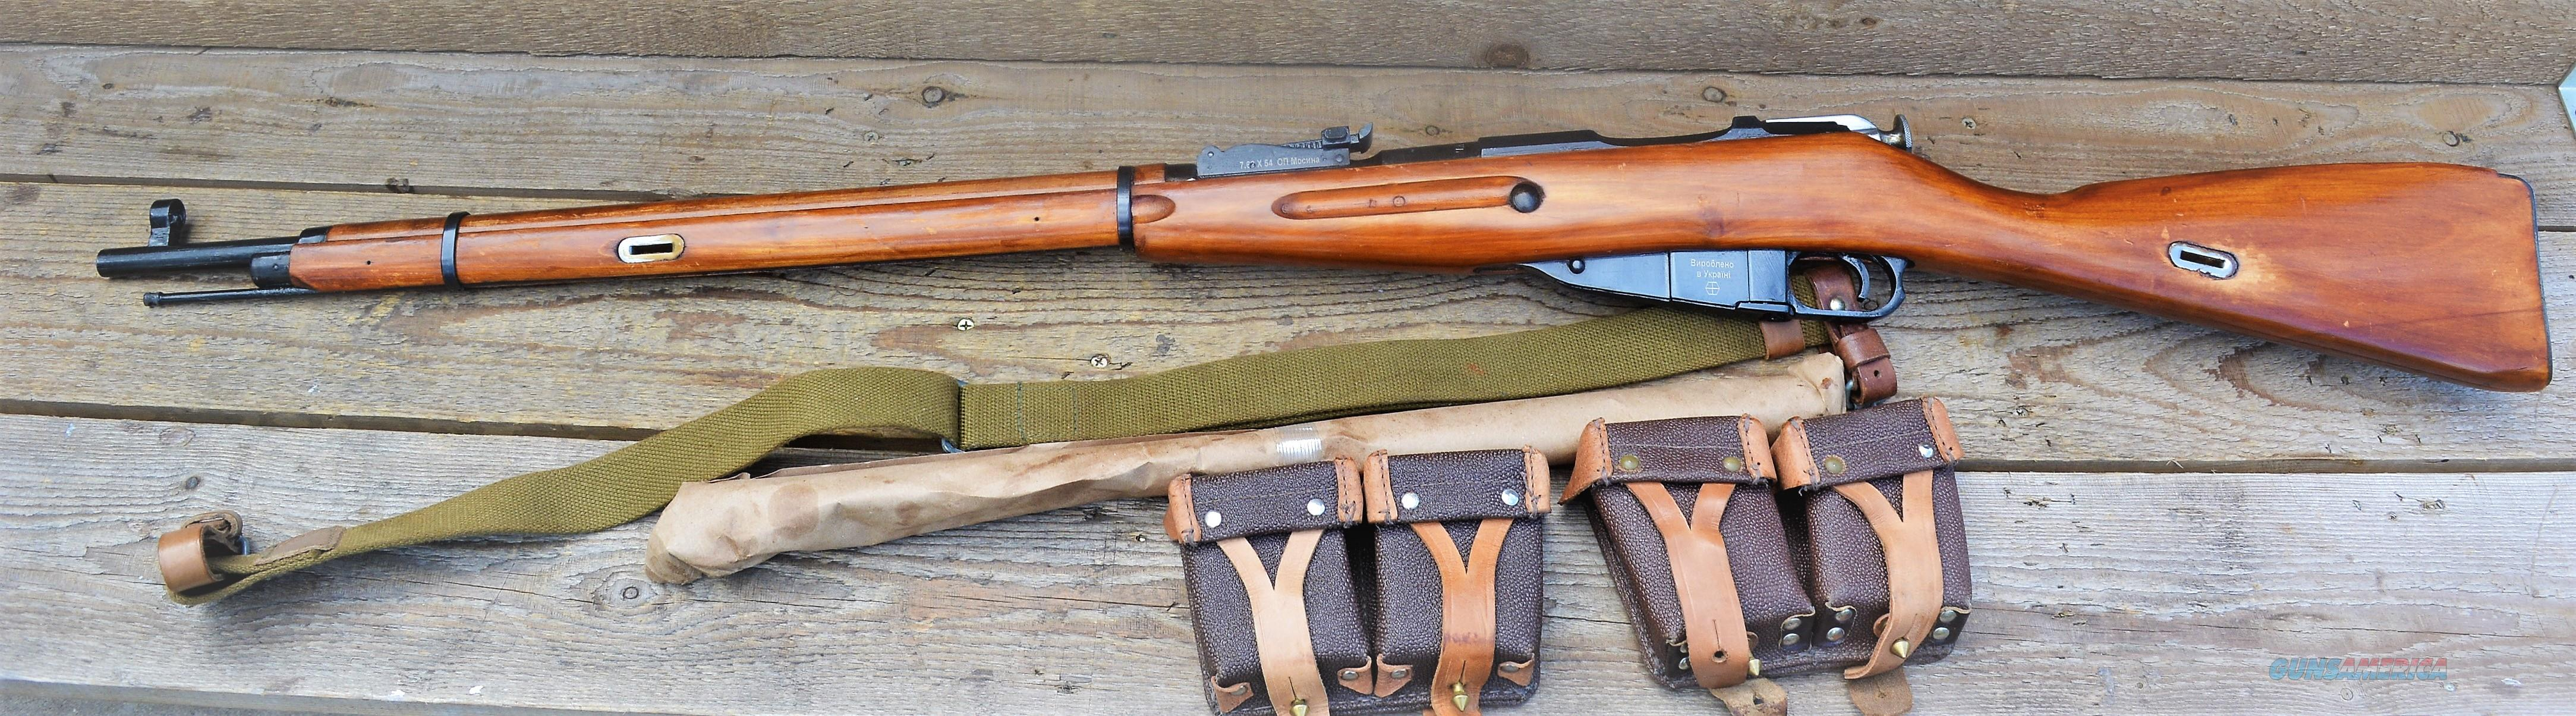 $47 Easy Pay LAYAWAY   I.O. Mosin Nagant M91/30 TDRG BOLT AMMO Pouches Dragoon Engraved hammer  1925 W sling 7.62×54mm RUSSIAN IOMOSI0020DT hunting   wood Metal  Guns > Rifles > Military Misc. Rifles Non-US > Other